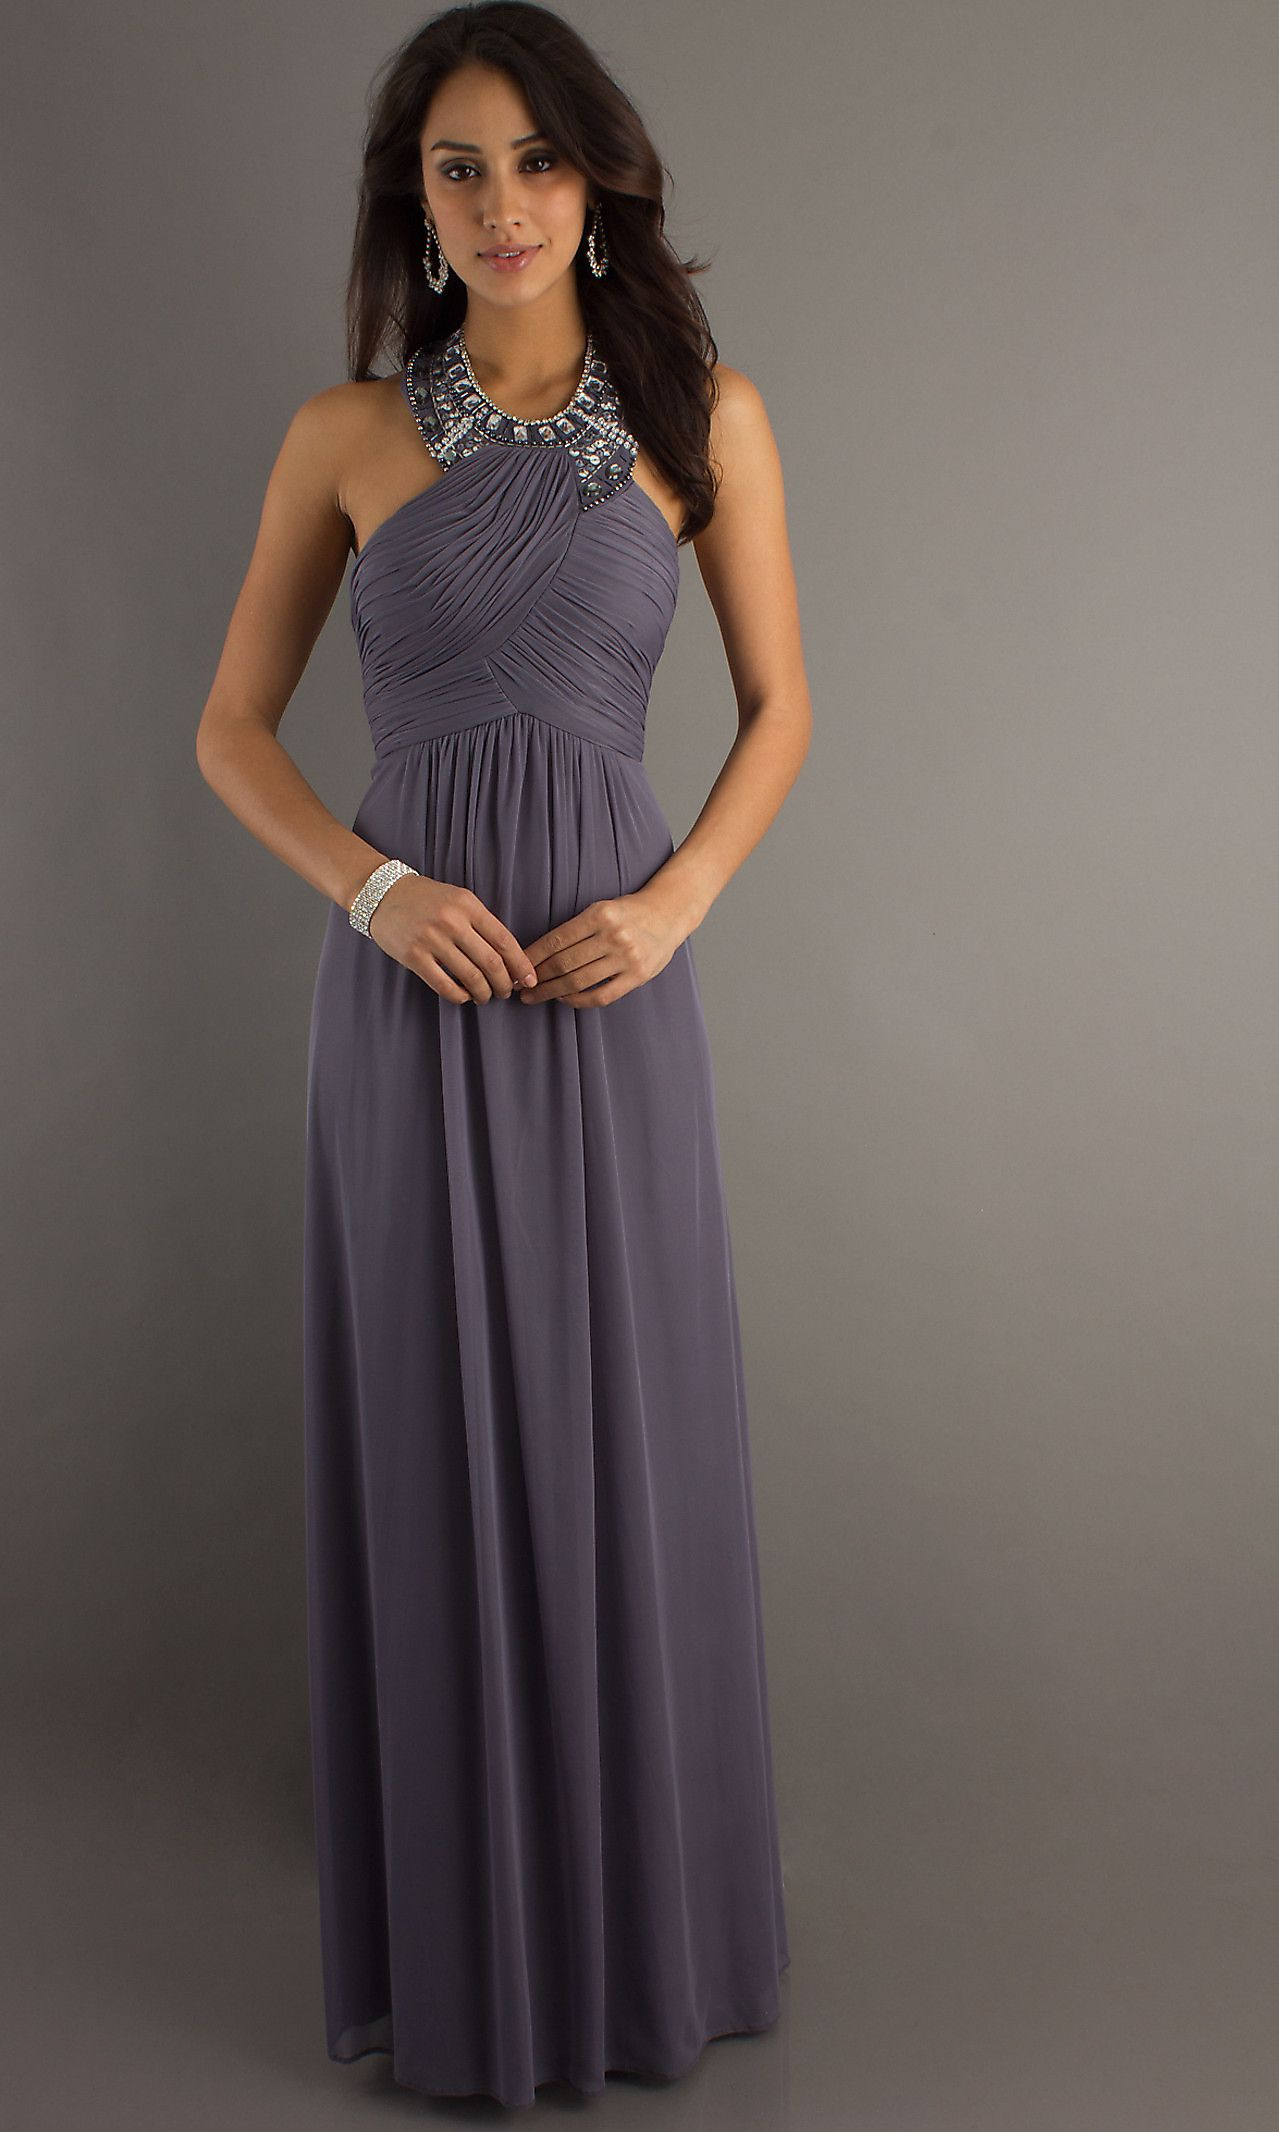 Gray dress for wedding party  Pin by Michline Boghos on elegant  Pinterest  Cocktail party